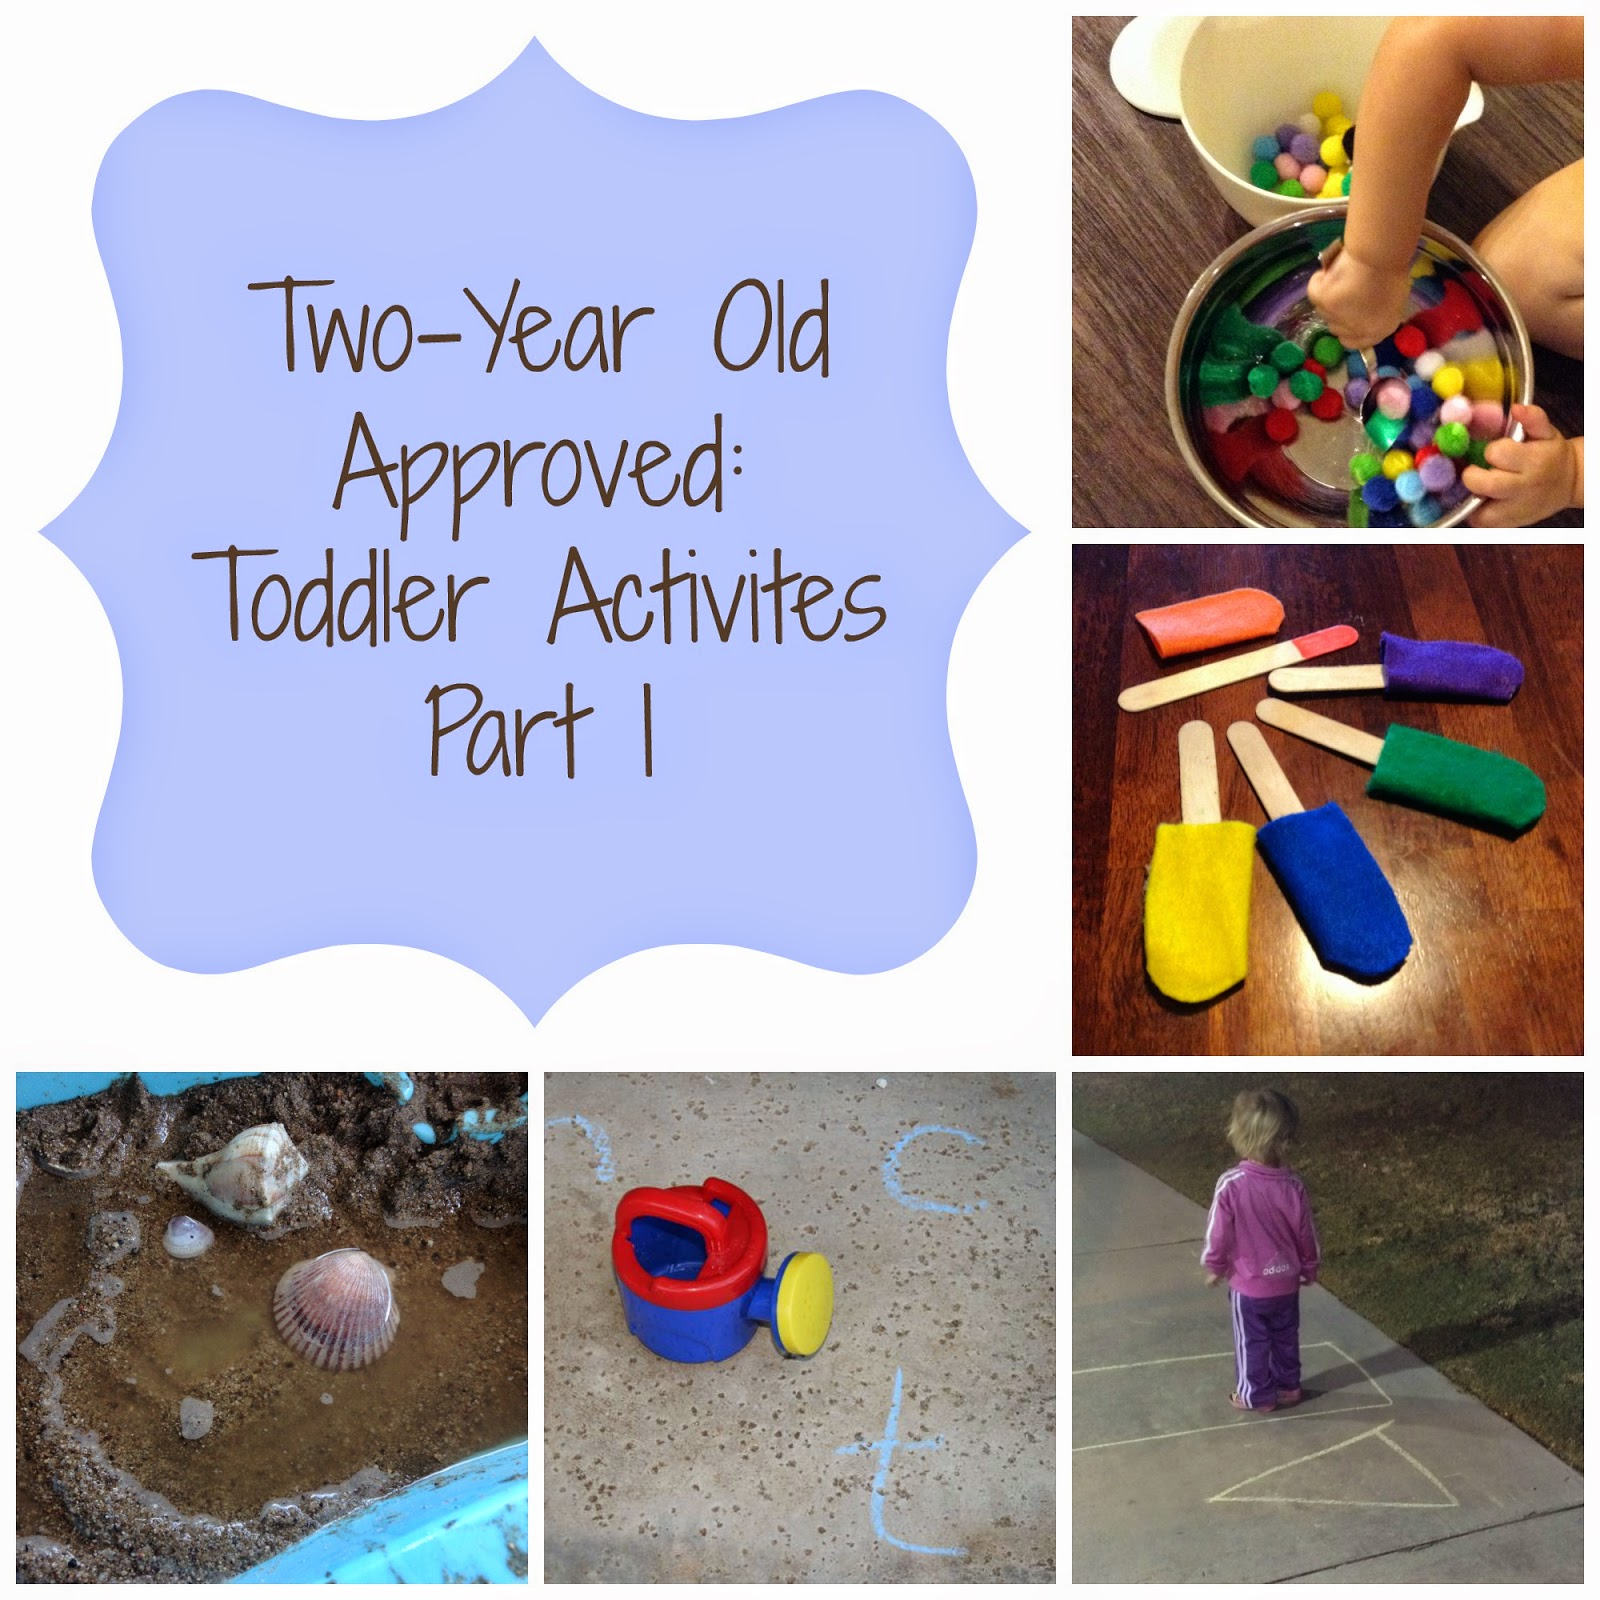 Hassle Free Housewife Toddler Tested And Approved Top At Home Two Year Old Activities